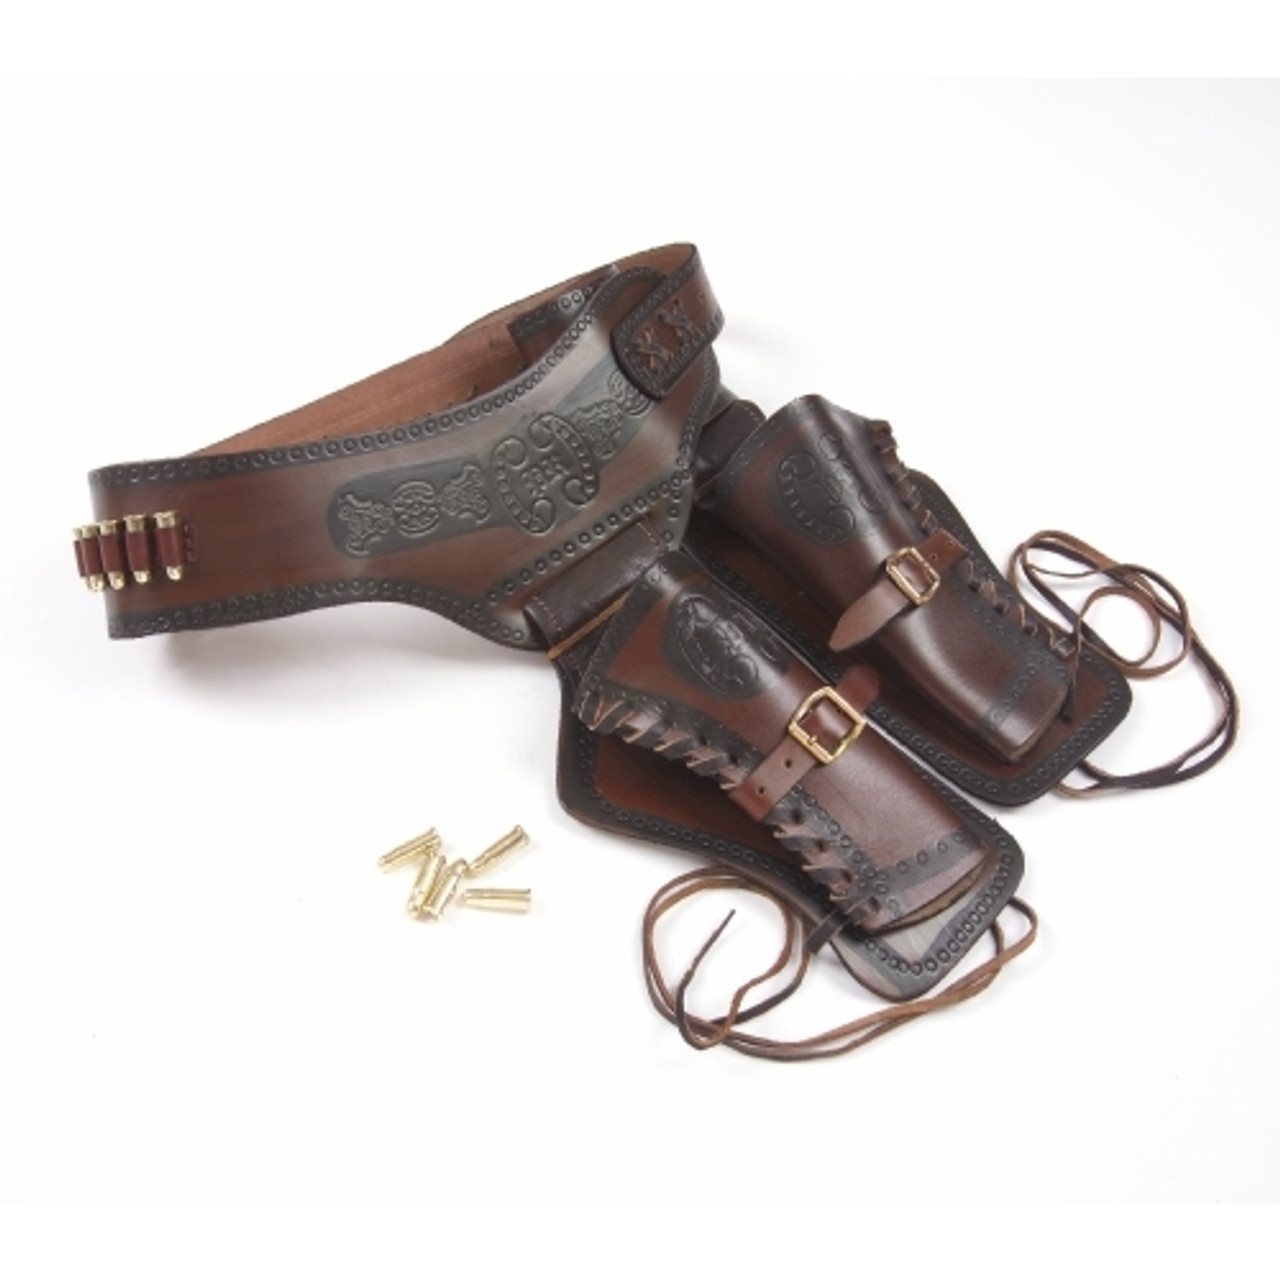 Holsters and Accessories for Replica Guns | ReplicaWeaponry com